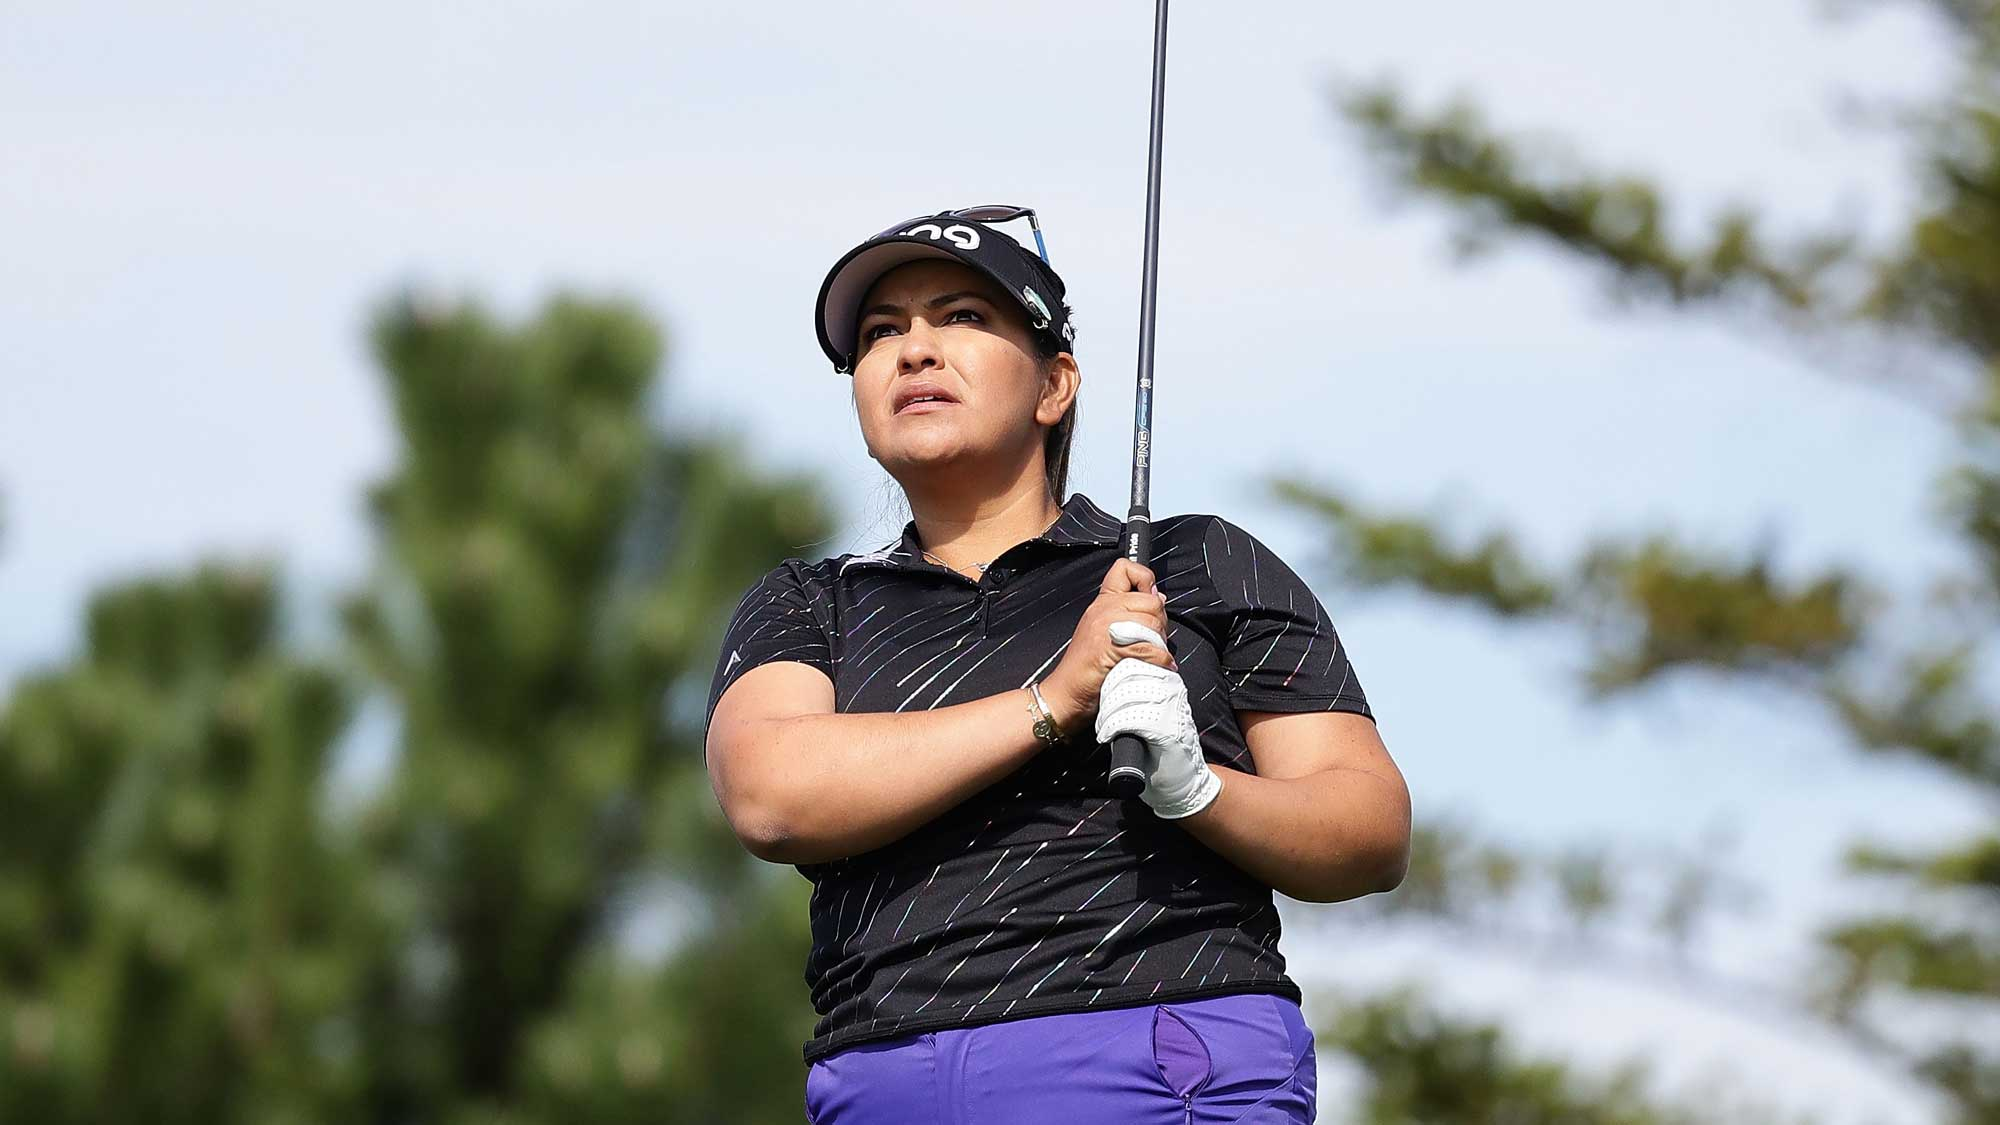 Lizette Salas of United States plays a tee shot on the 3rd hole during the final round of the LPGA KEB Hana Bank Championship